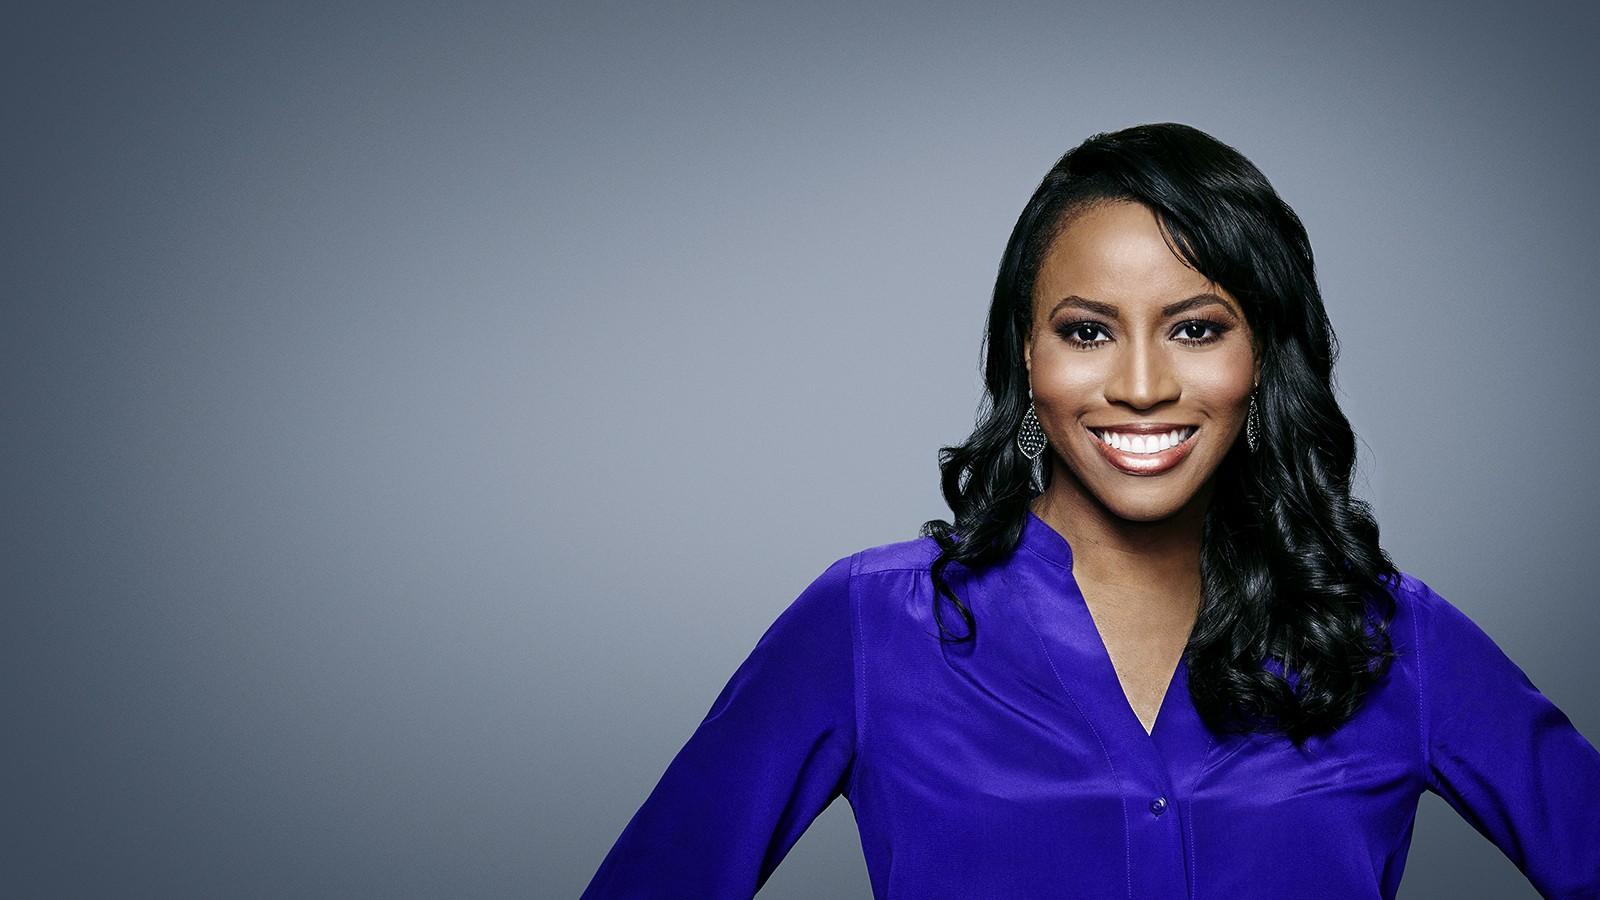 CNN Profiles - Zain Asher - Anchor - CNN